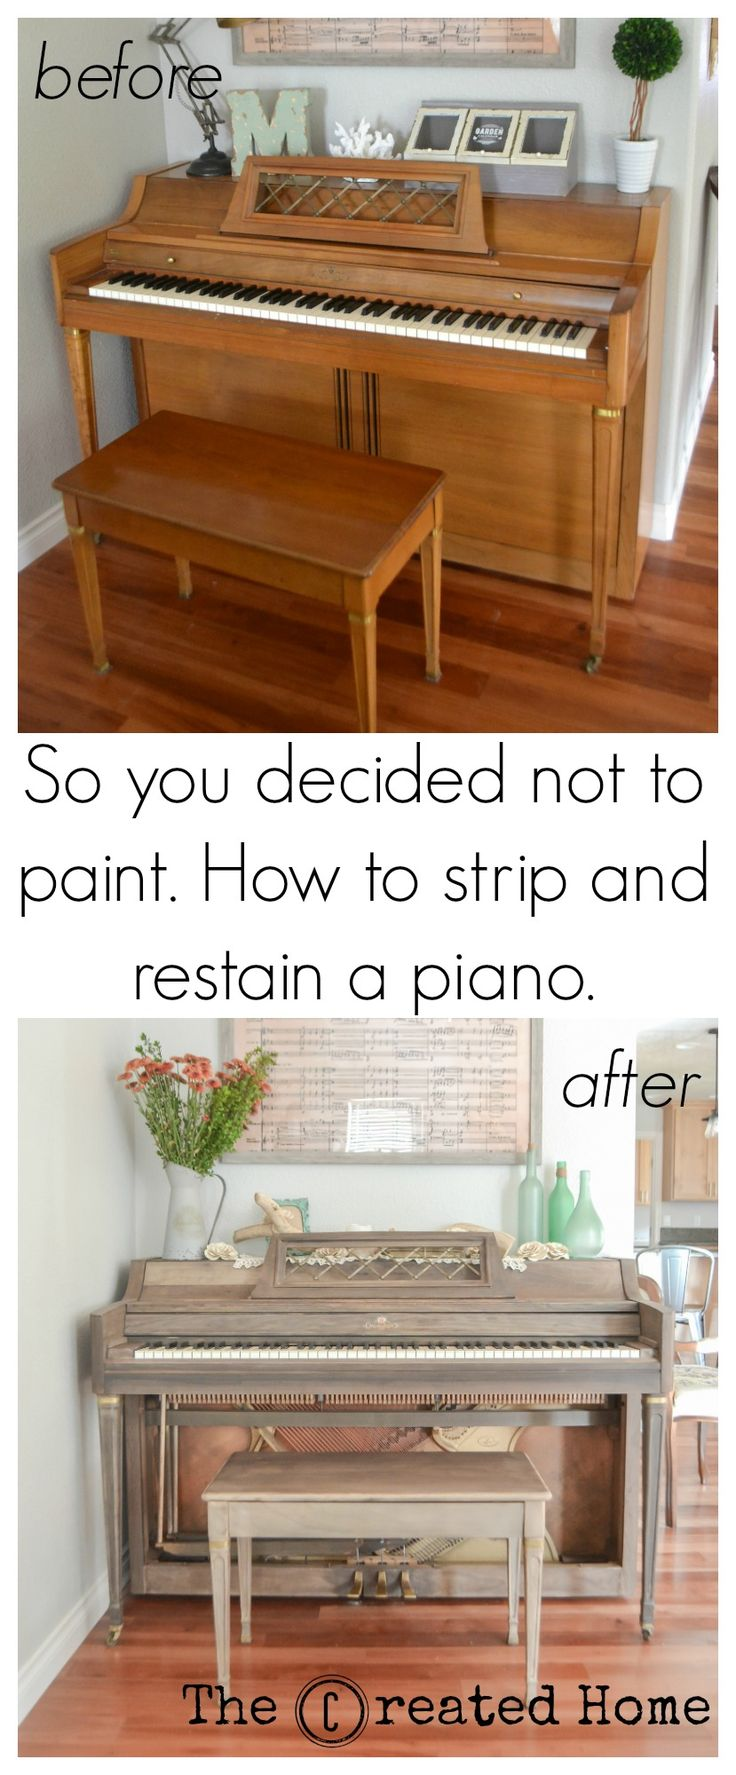 If Painting Your Old Piano Isnt For You Heres How To Strip It Down And Add Your Own Flare Such As This Amazing Weatherwood Stain Finish